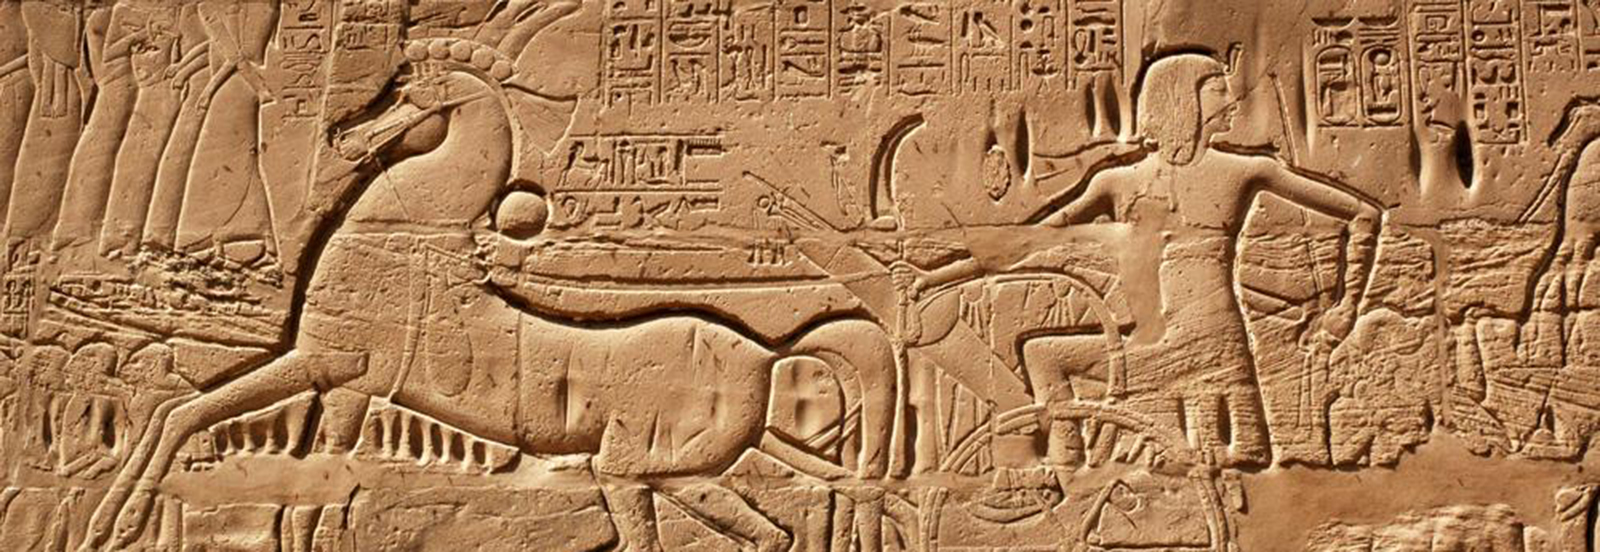 The war scenes of Seti I were copied by the Epigraphic Survey of the  University of Chicago in the 1970s. This definitive record is already invaluable since the reliefs have decayed rapidly since then.